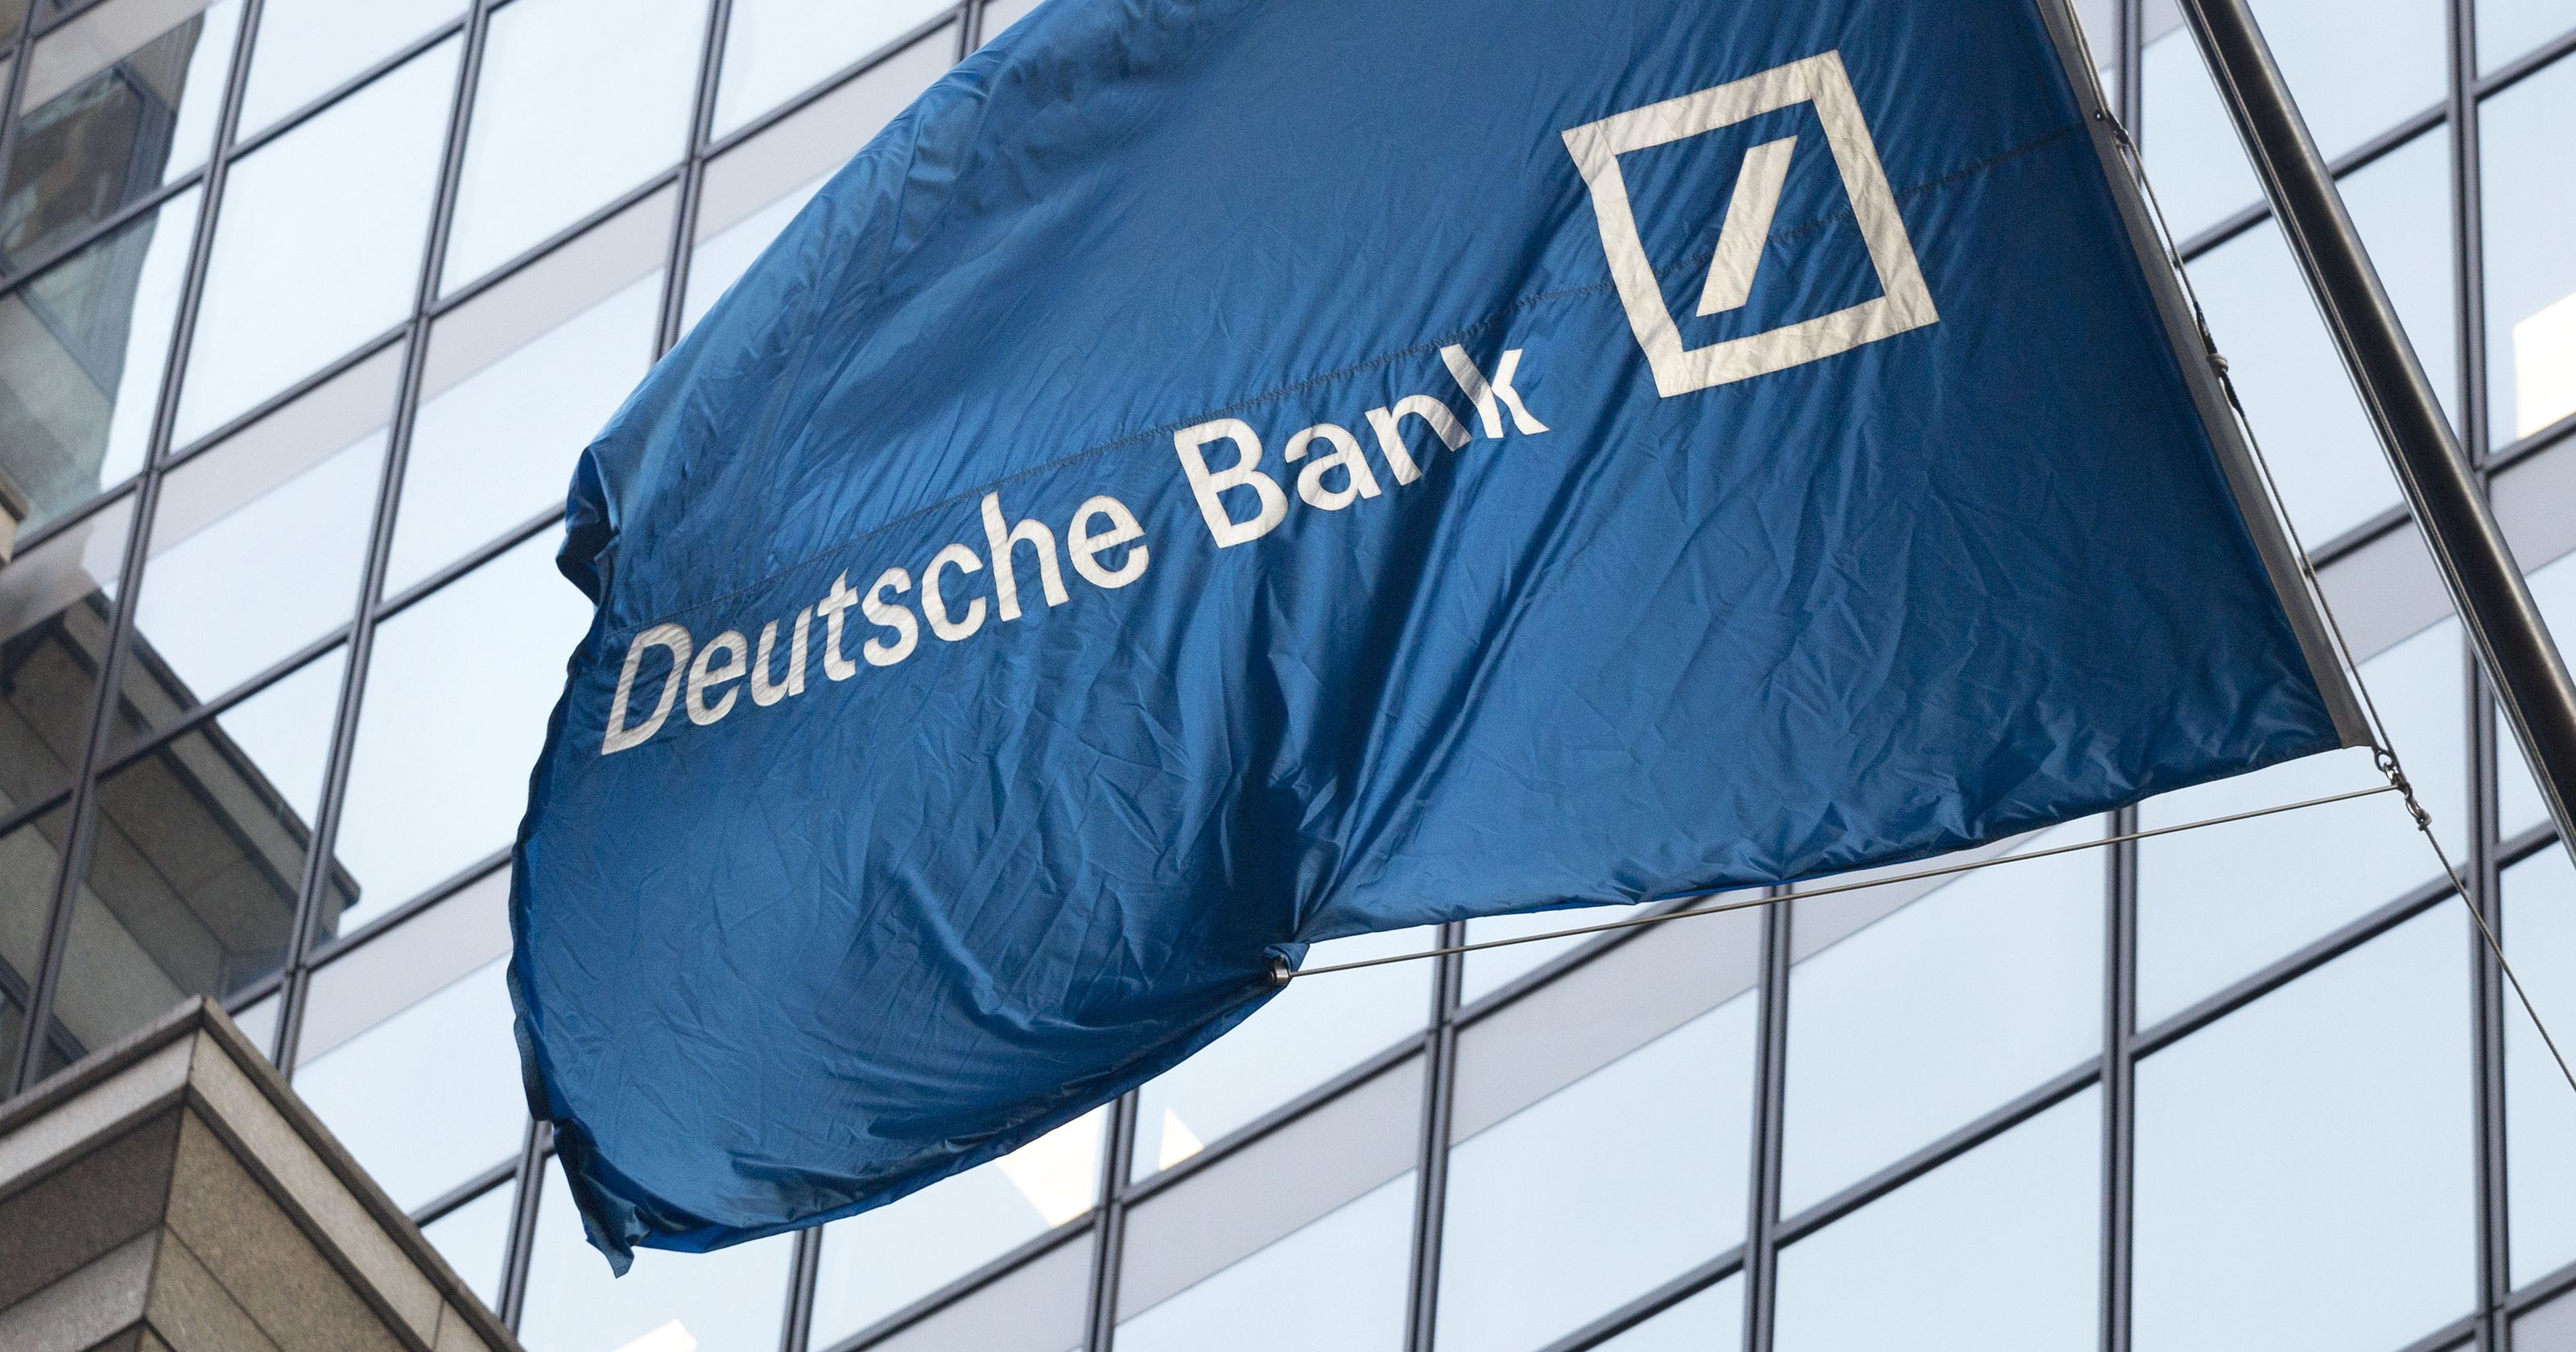 Bandiera Deutsche bank